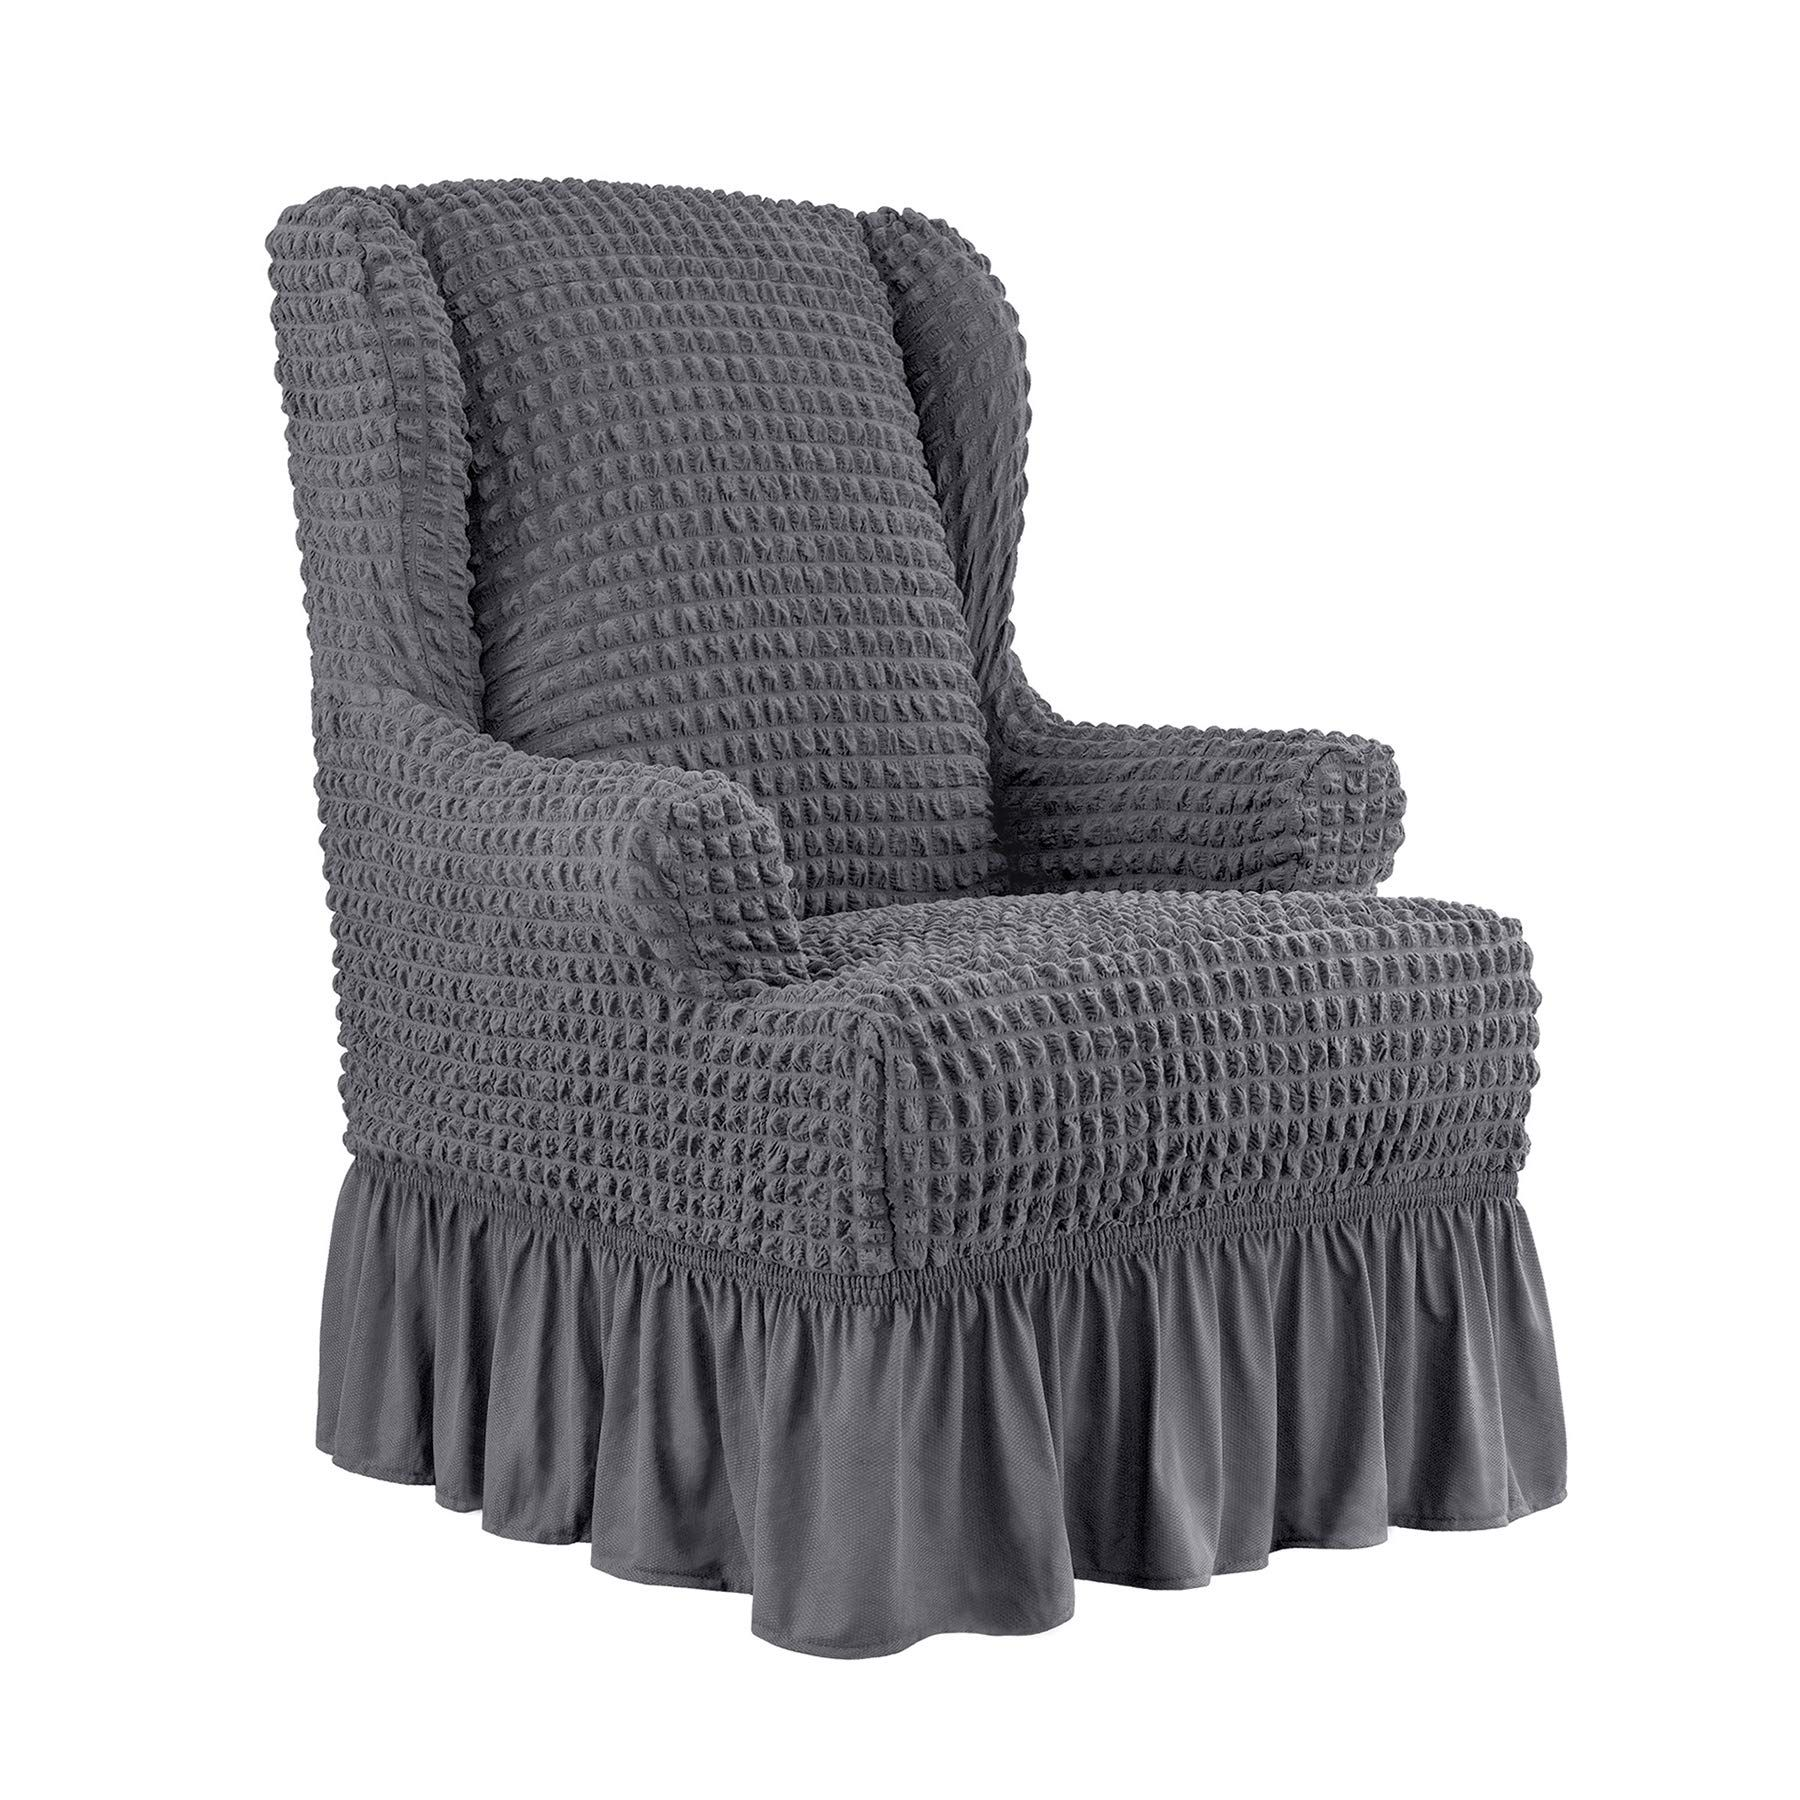 Chun yi 1piece universal easy fitted wingback chair cover